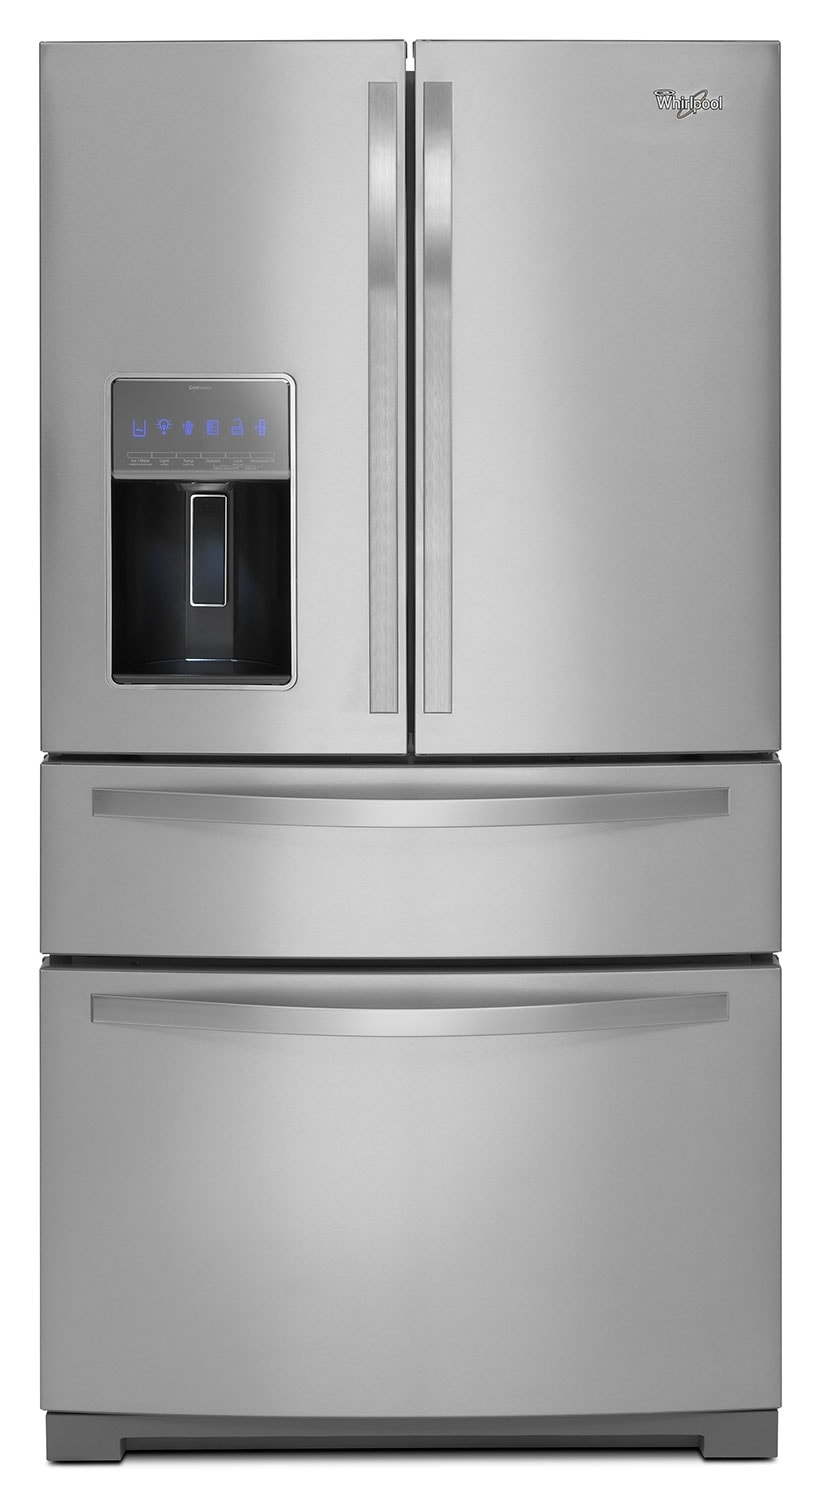 Whirlpool Stainless Steel French Door Refrigerator (26.2 Cu. Ft.) - WRX988SIBM